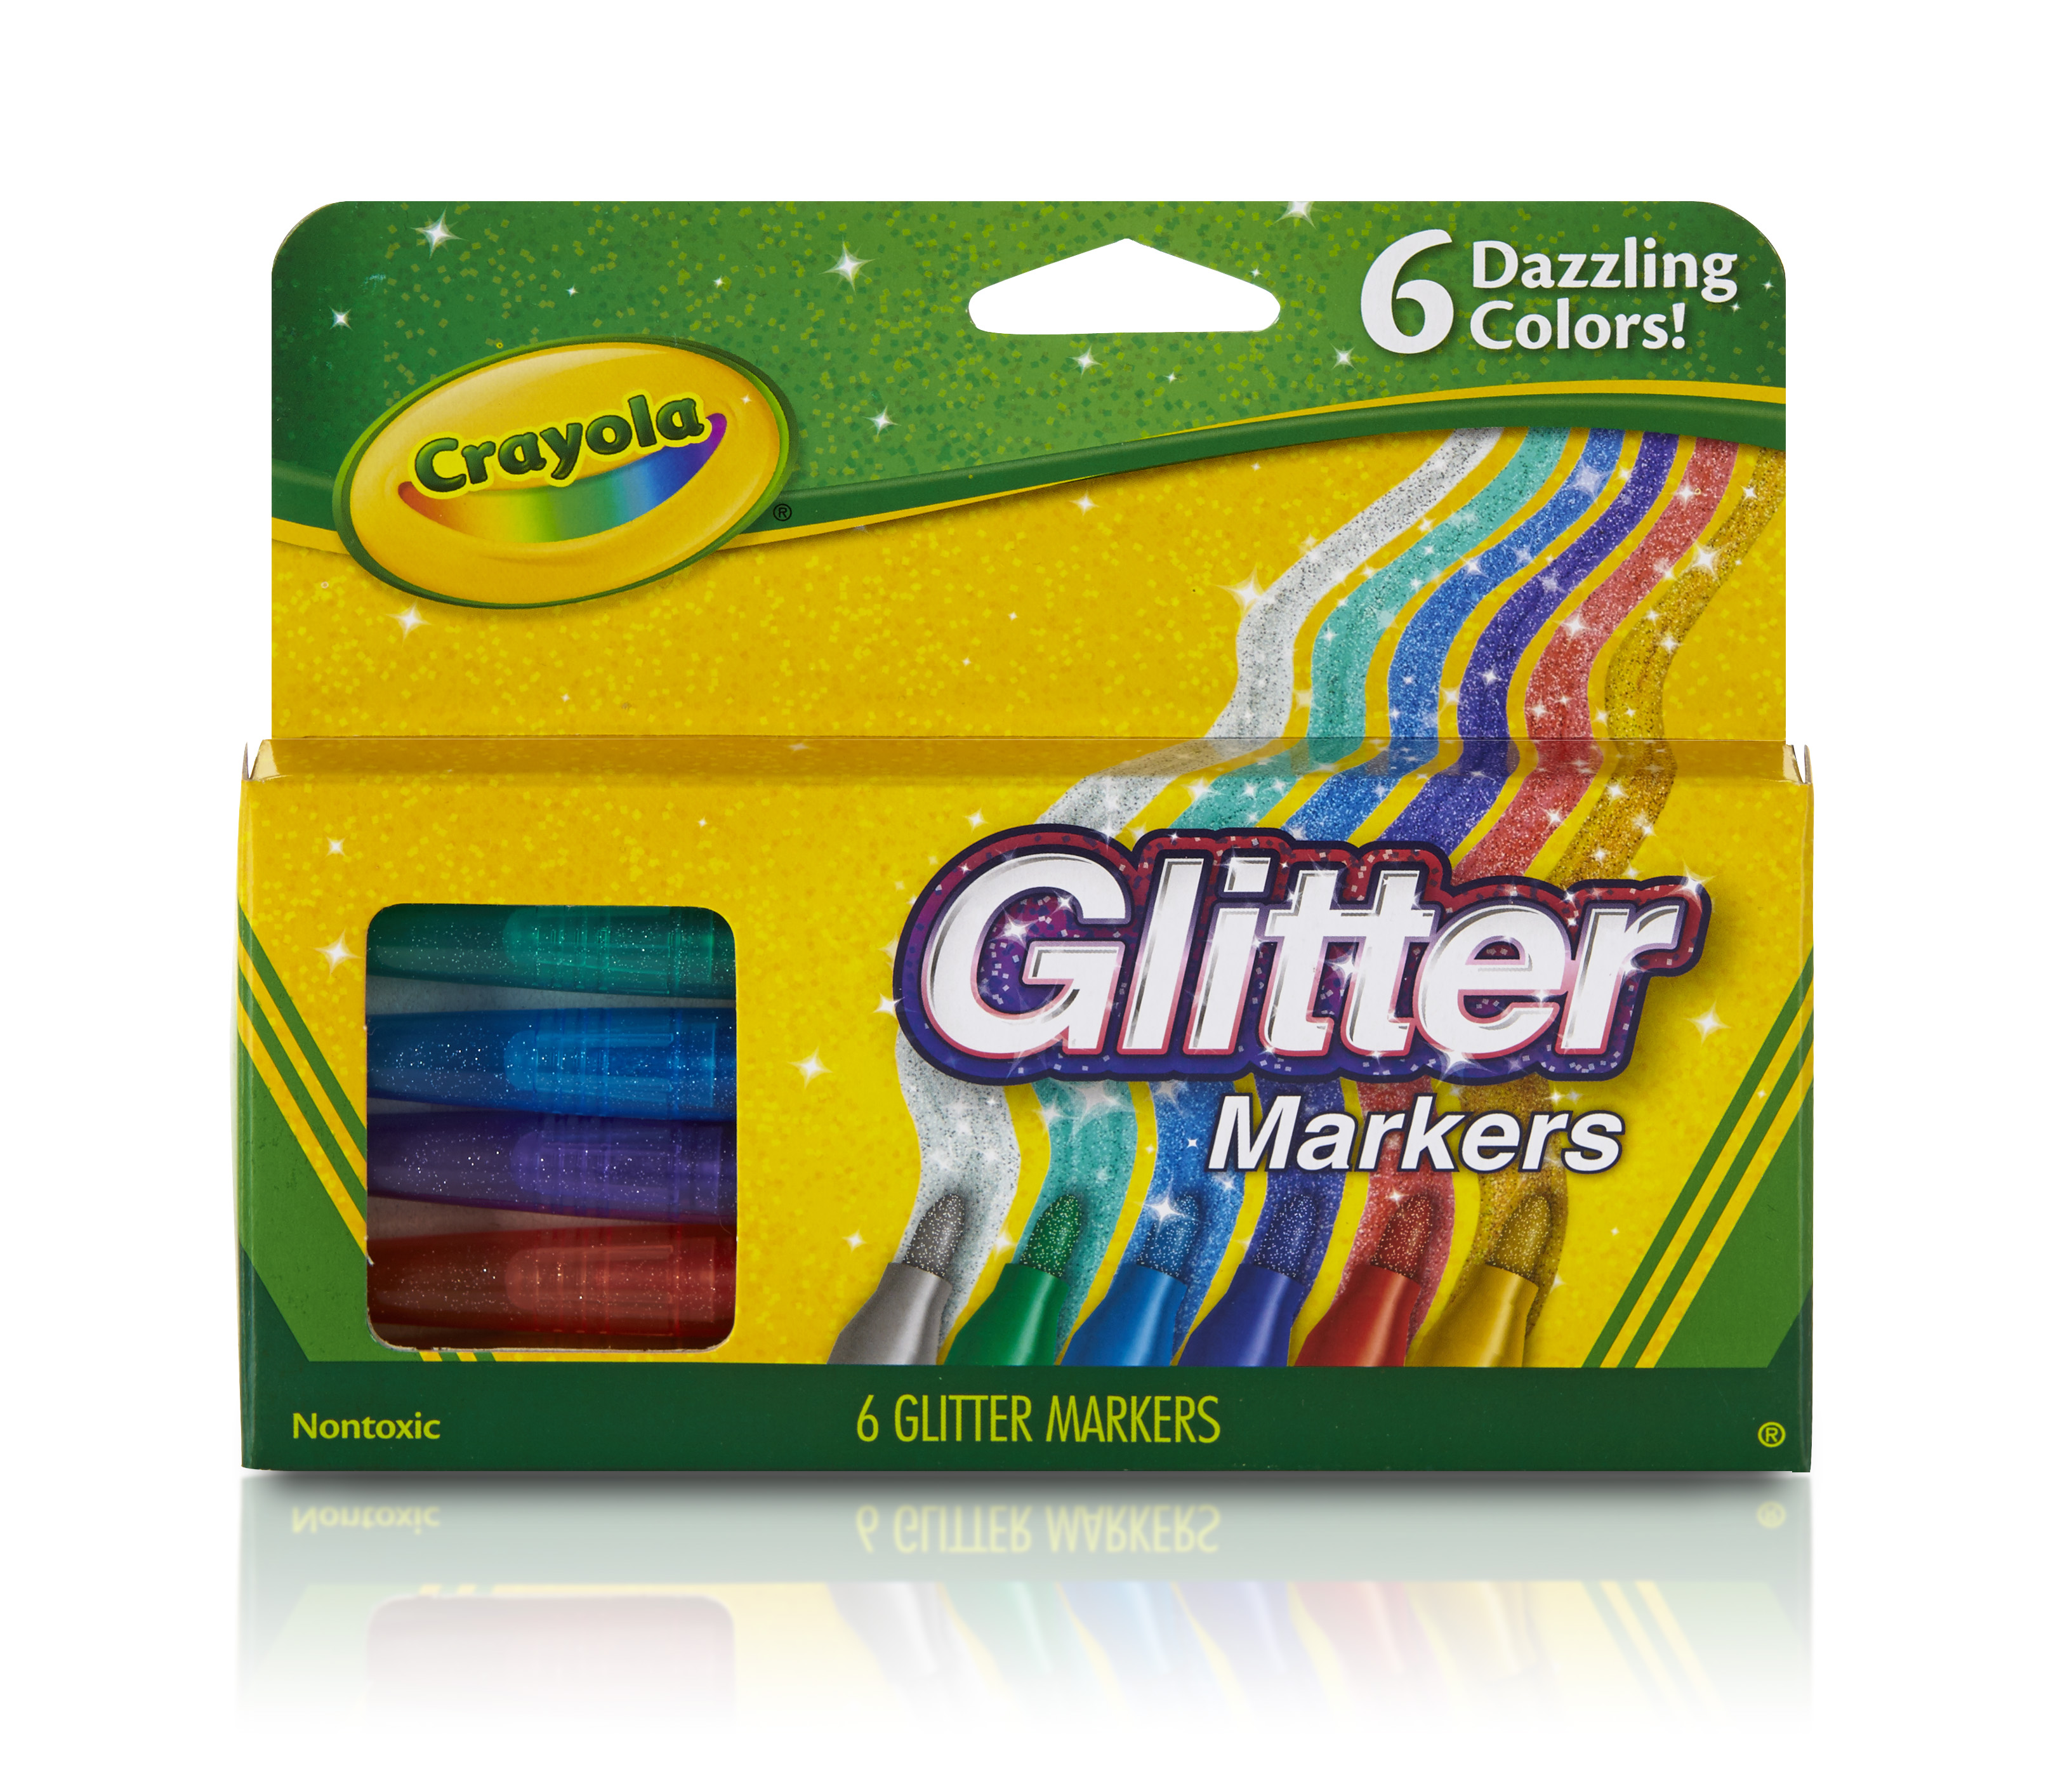 Crayola Glitter Markers, 6-count by Crayola